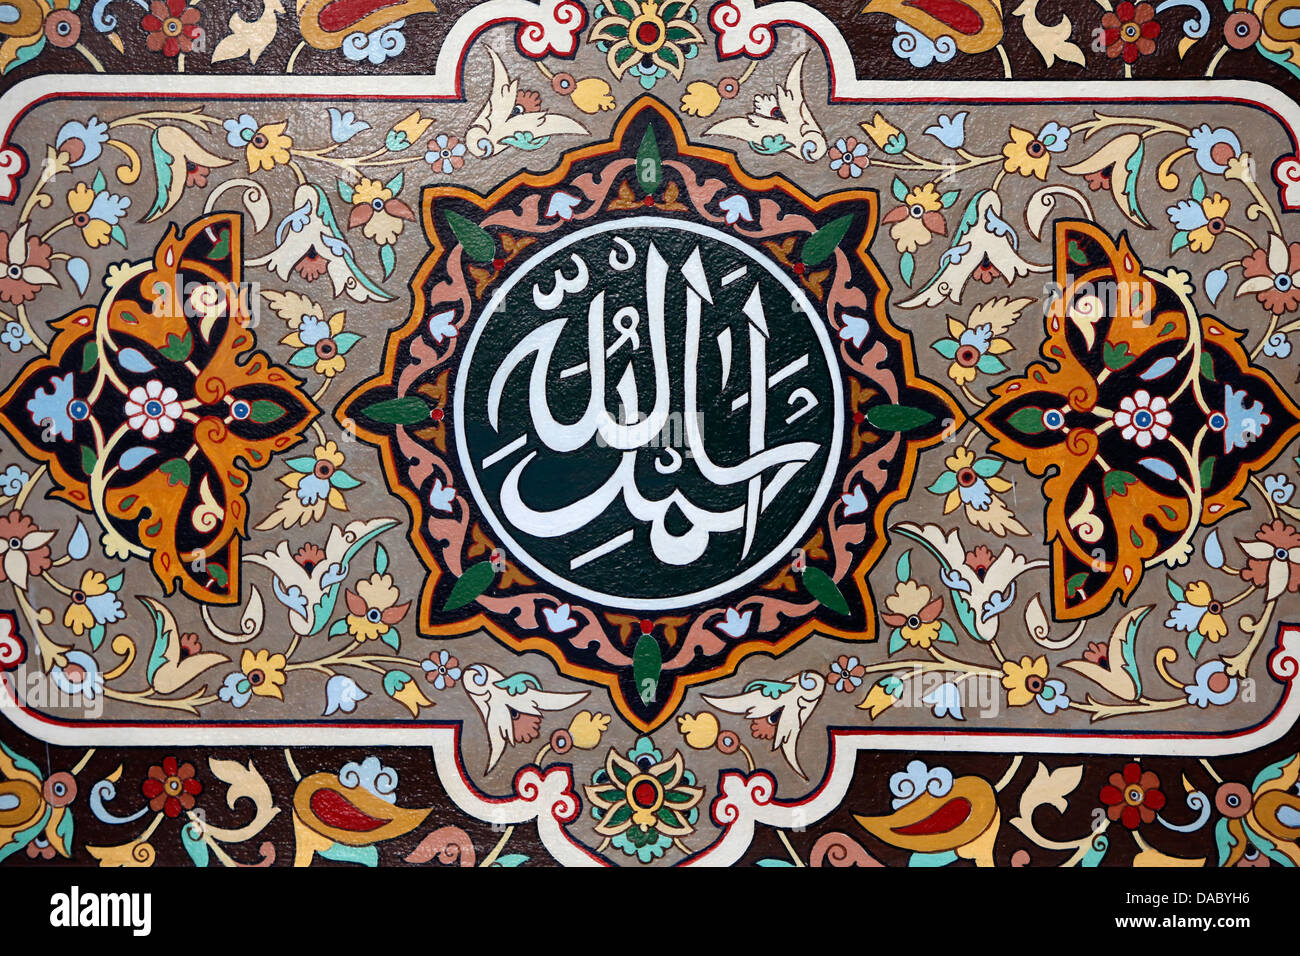 Islamic calligraphy reading Thanks to Allah, Baku, Azerbaijan, Central Asia, Asia - Stock Image